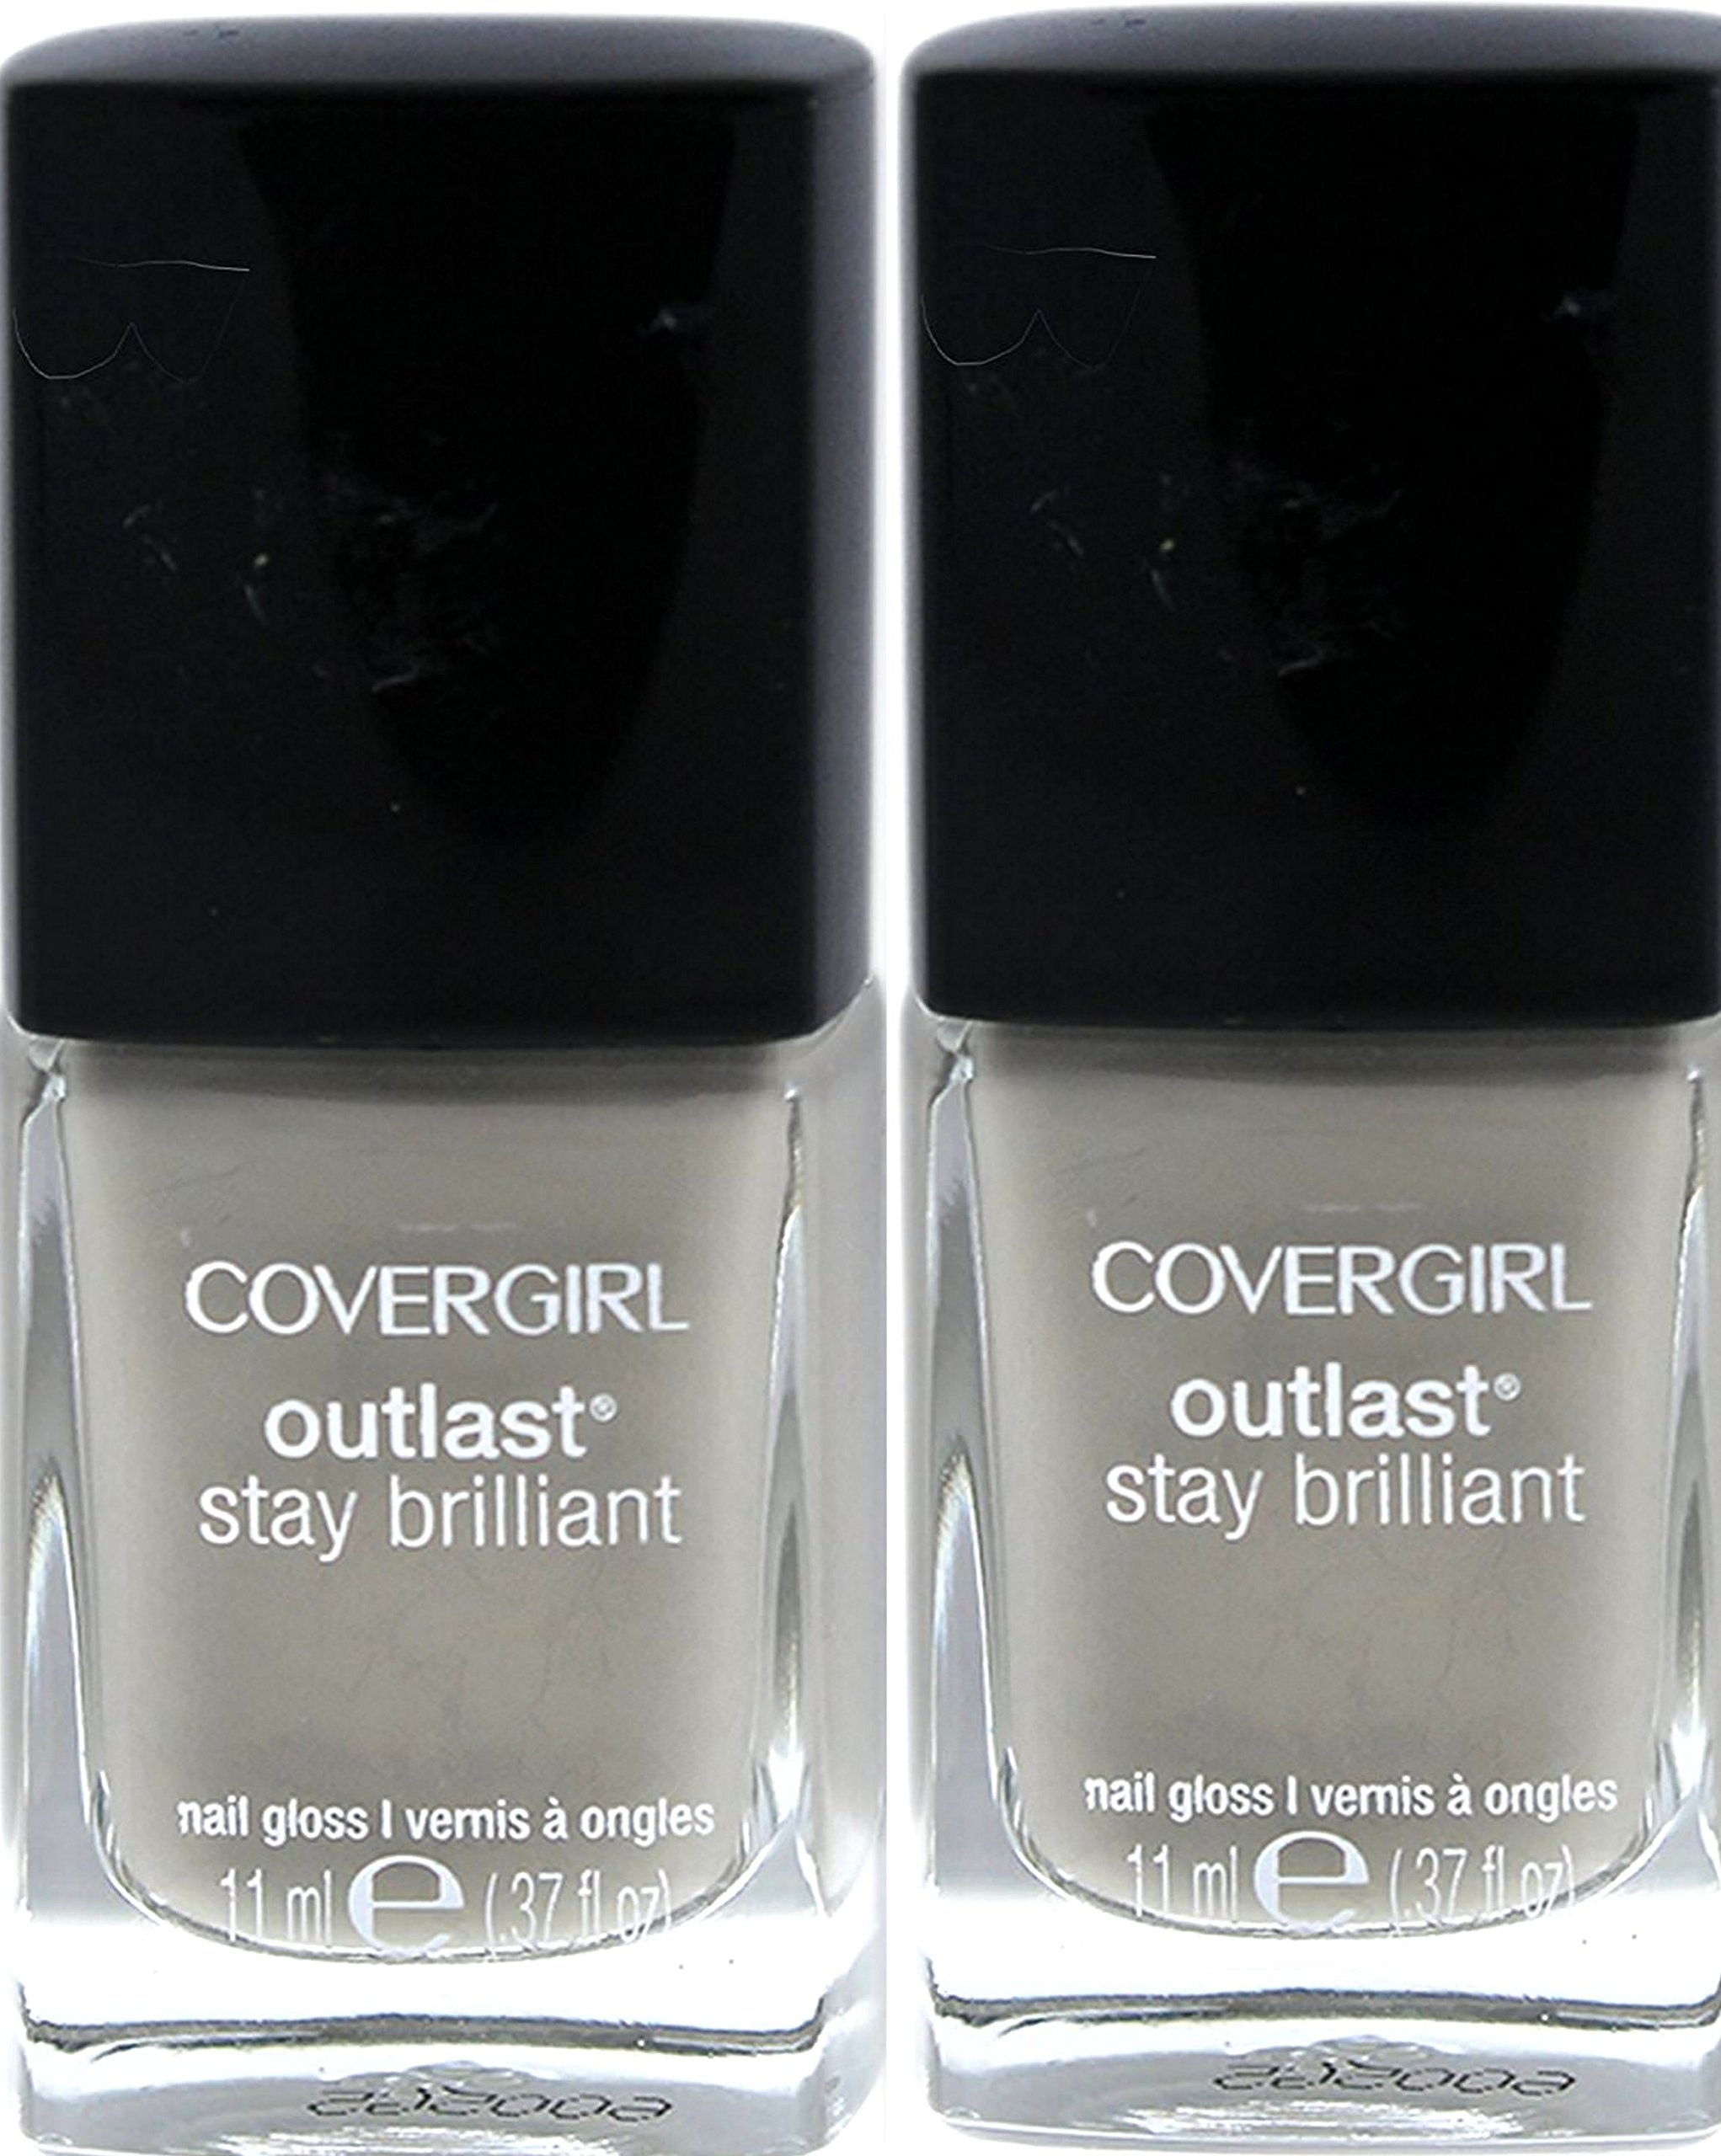 Covergirl Covergirl STAR WARS THE FORCE AWAKENS Nail Gloss (Speed of Light 200, .37 fl oz) PACK OF 2